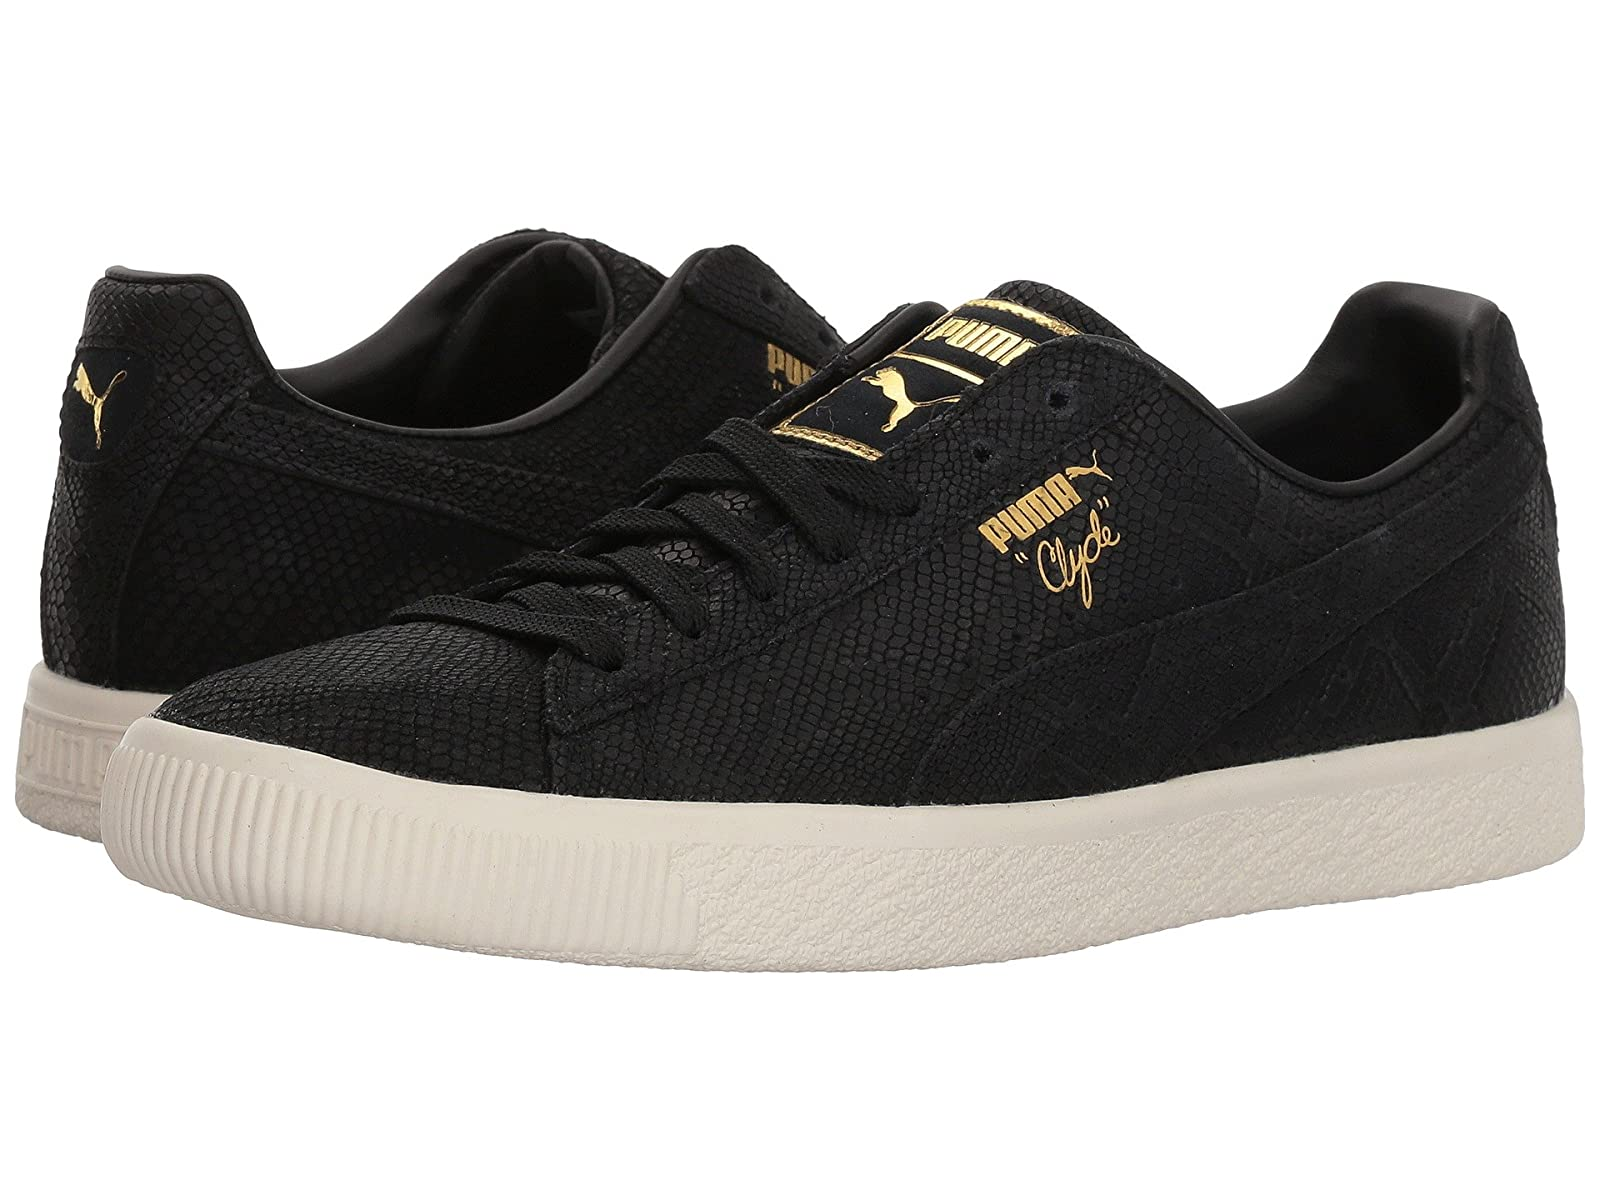 PUMA Clyde EuphoriaCheap and distinctive eye-catching shoes